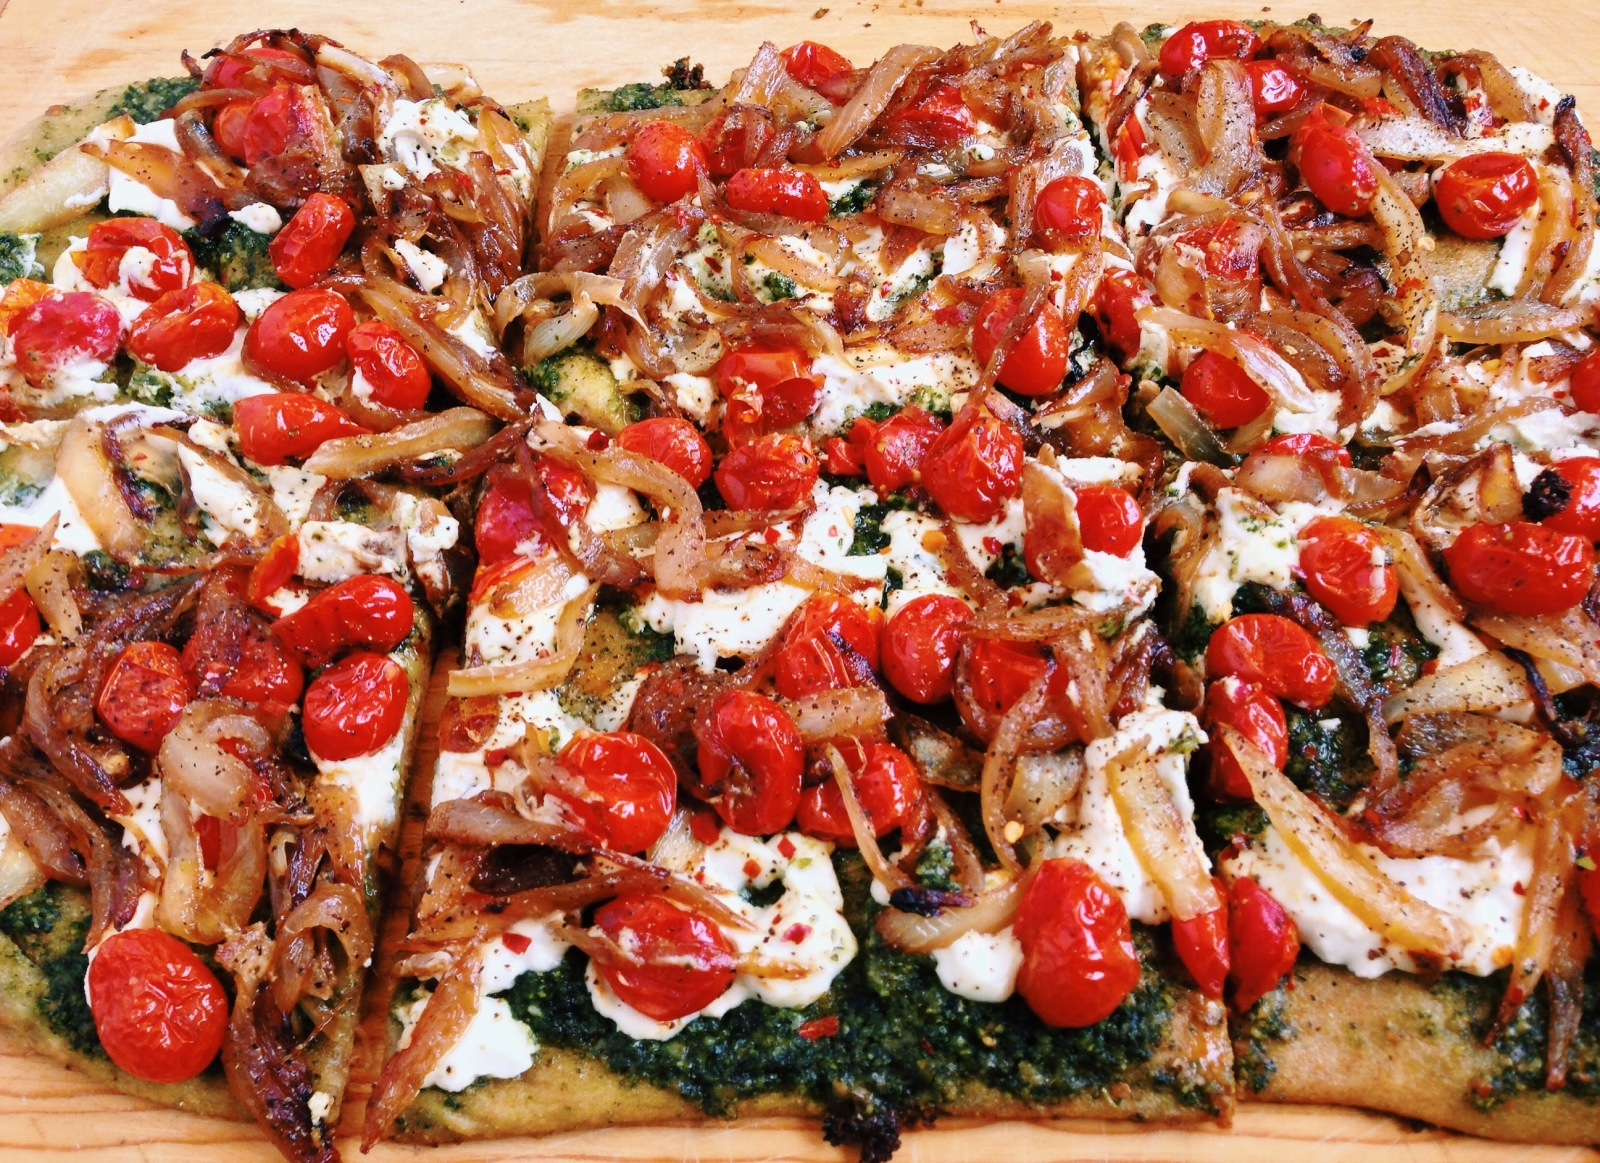 Goat Cheese Pizza with Caramelized Onions and Pesto